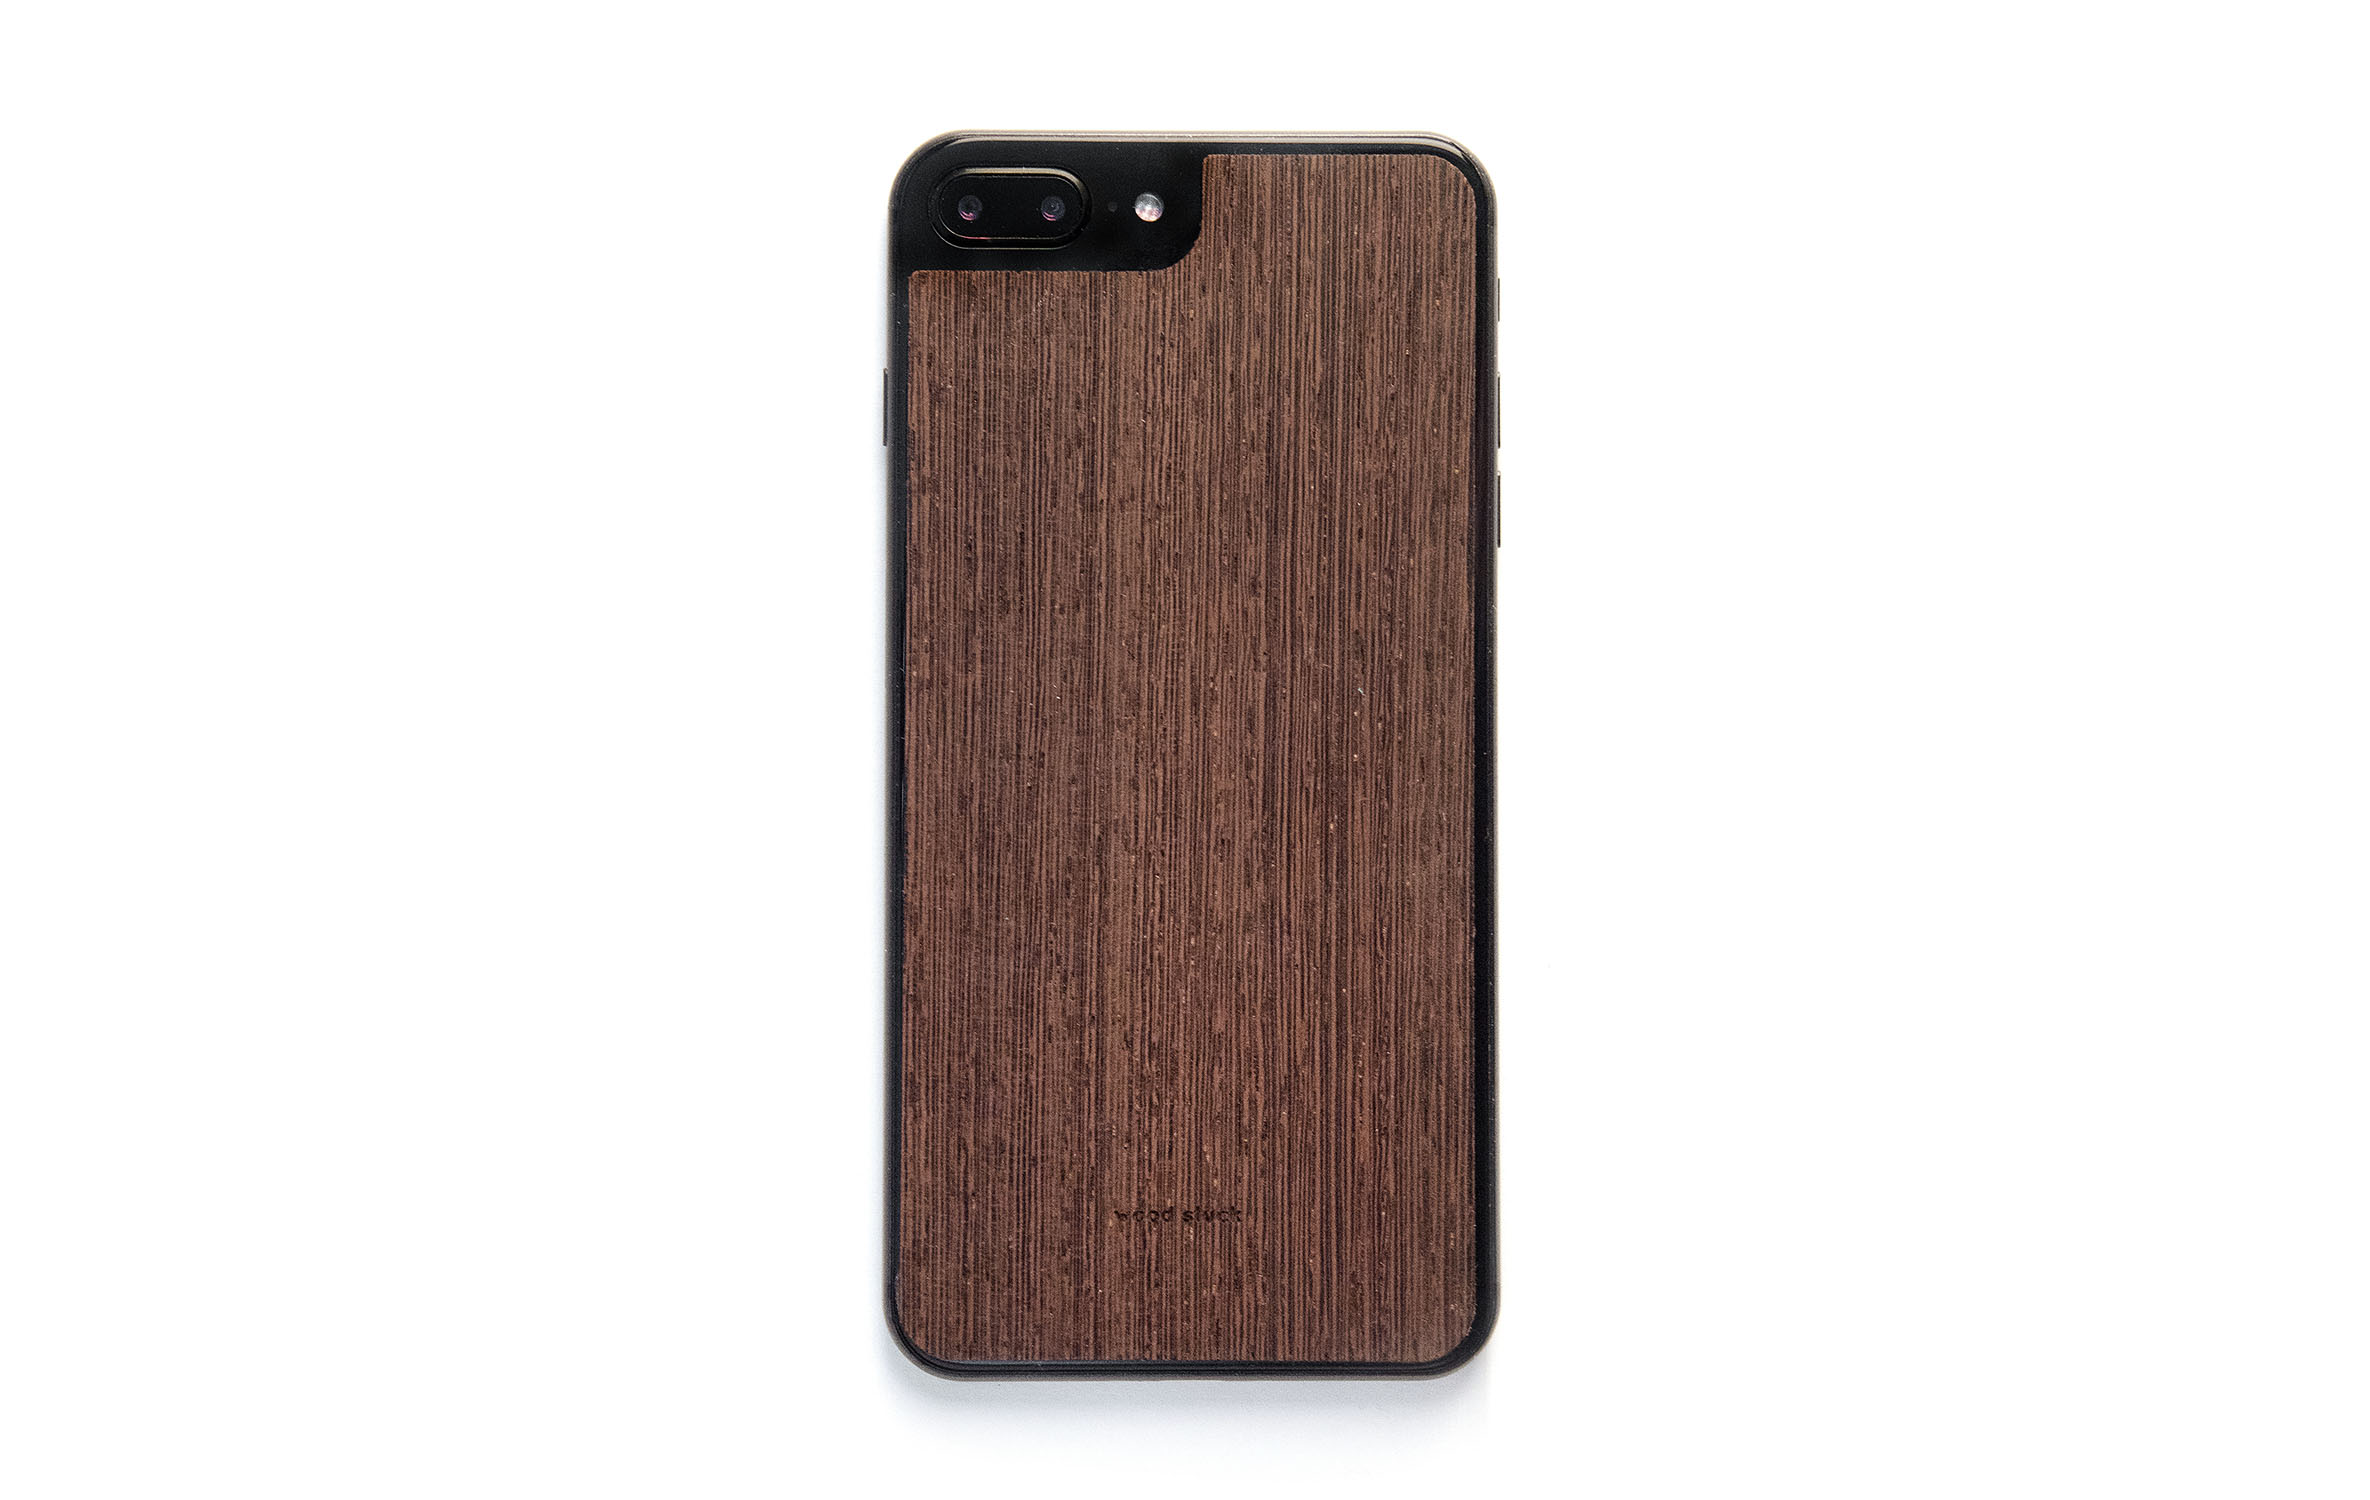 Wooden iPhone 8 Plus Case made of Wenge • Wood Stuck